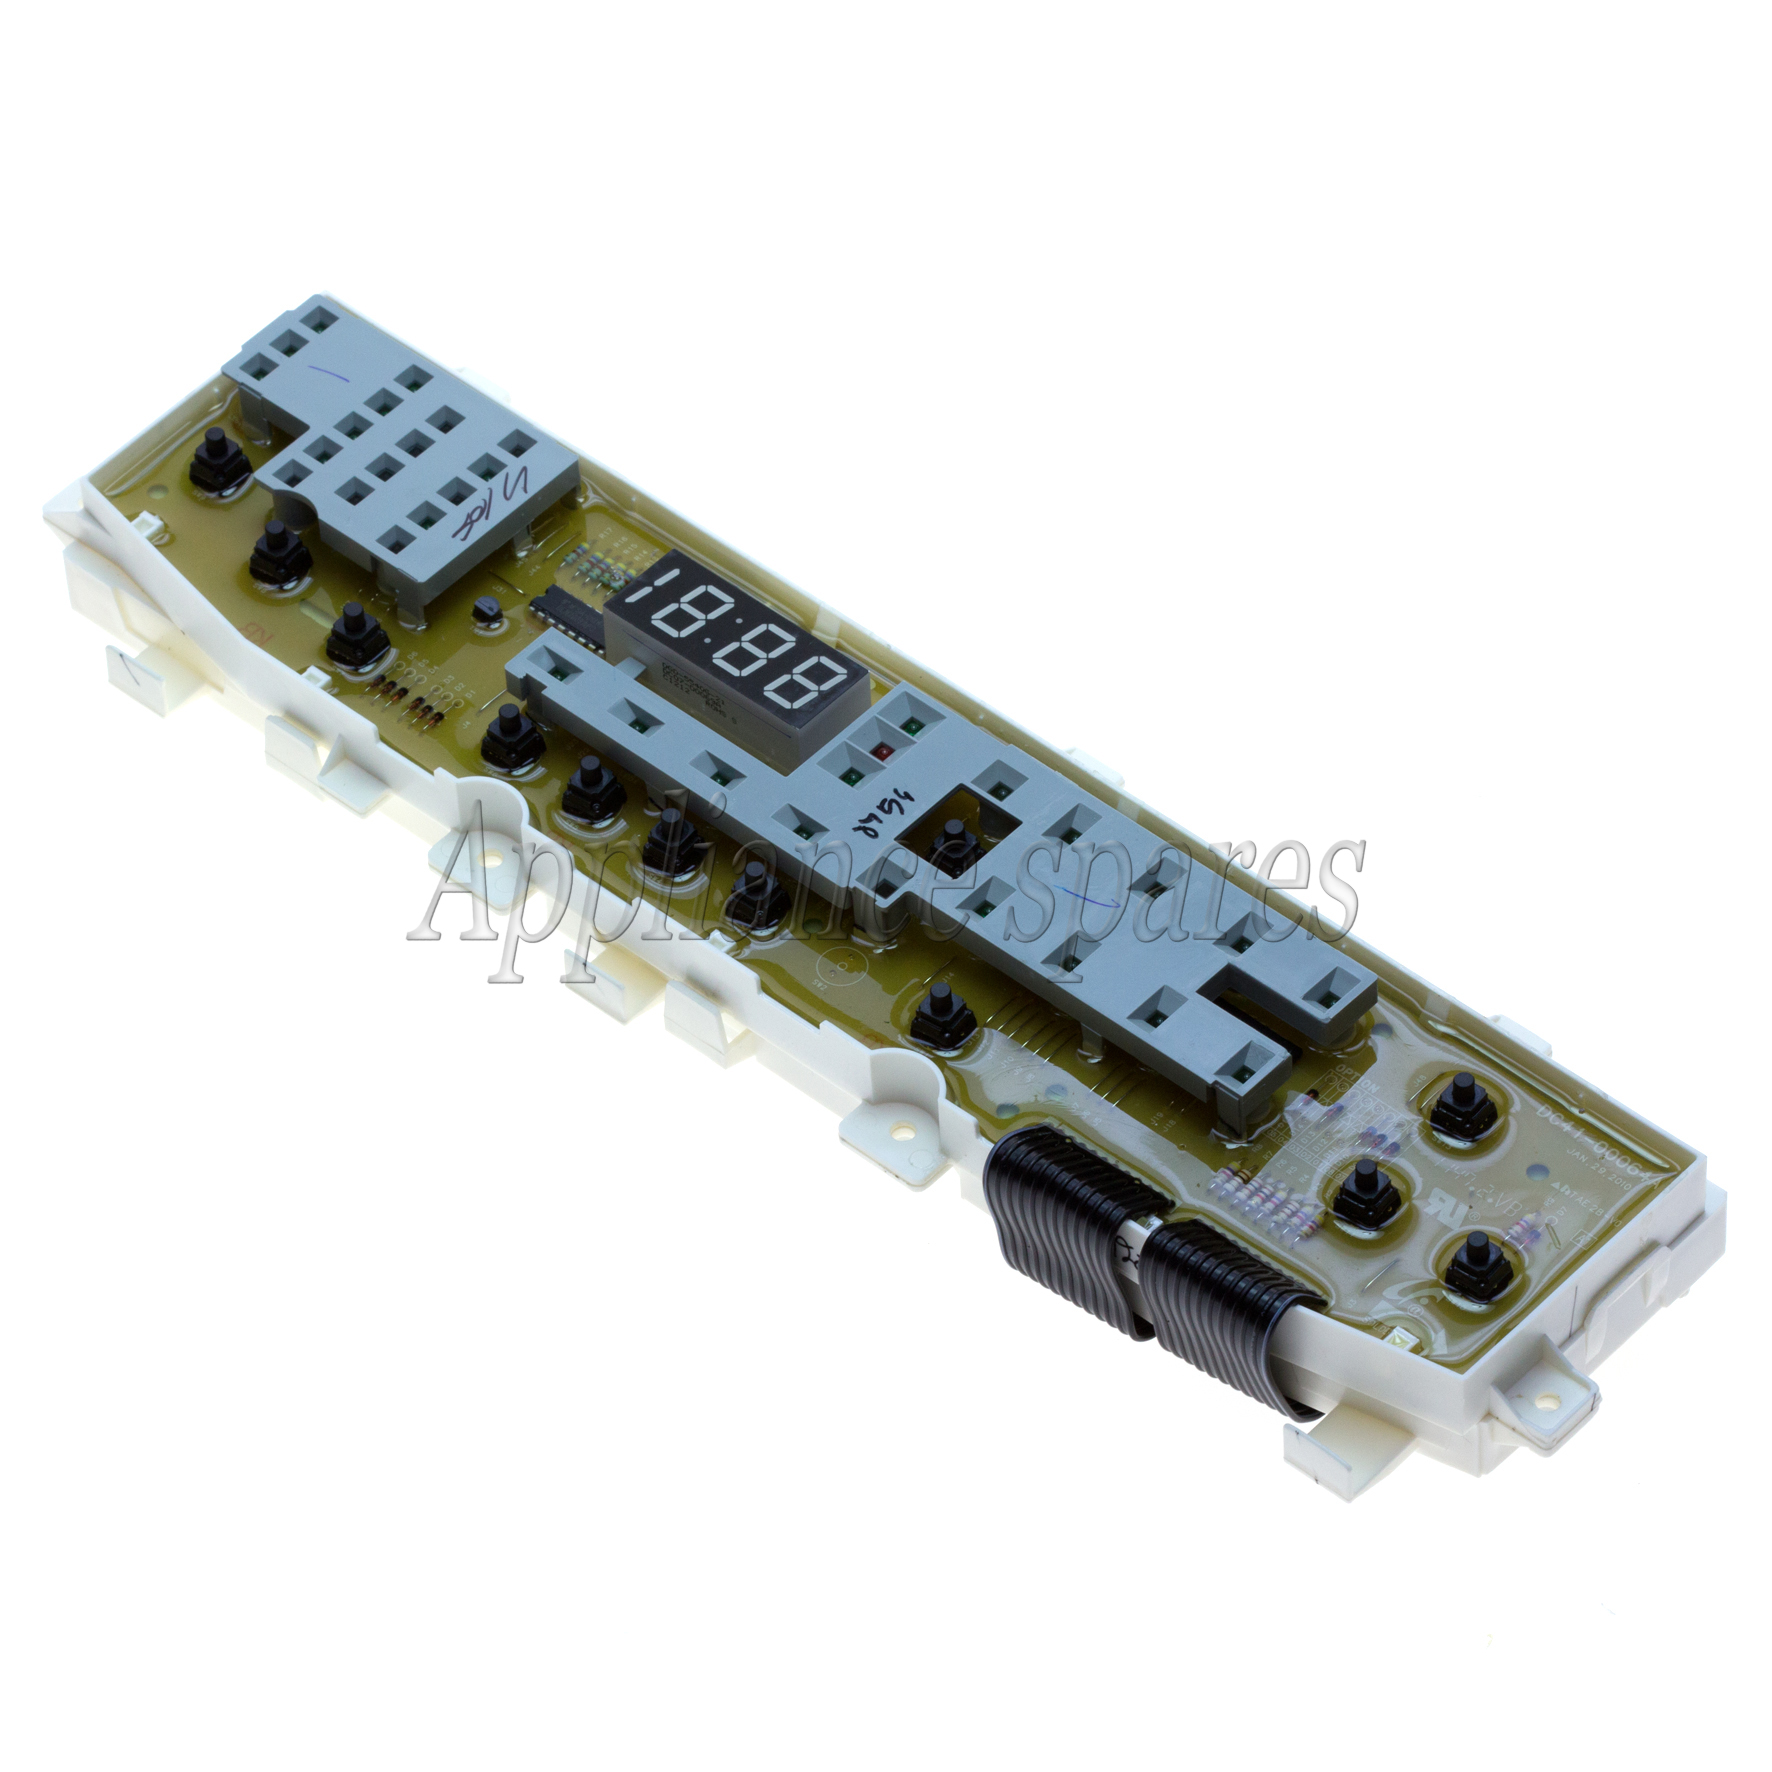 Samsung Top Loader Washing Machine Pc Board Mfsui12ncp Lategan And Circuit Pcb Assembly